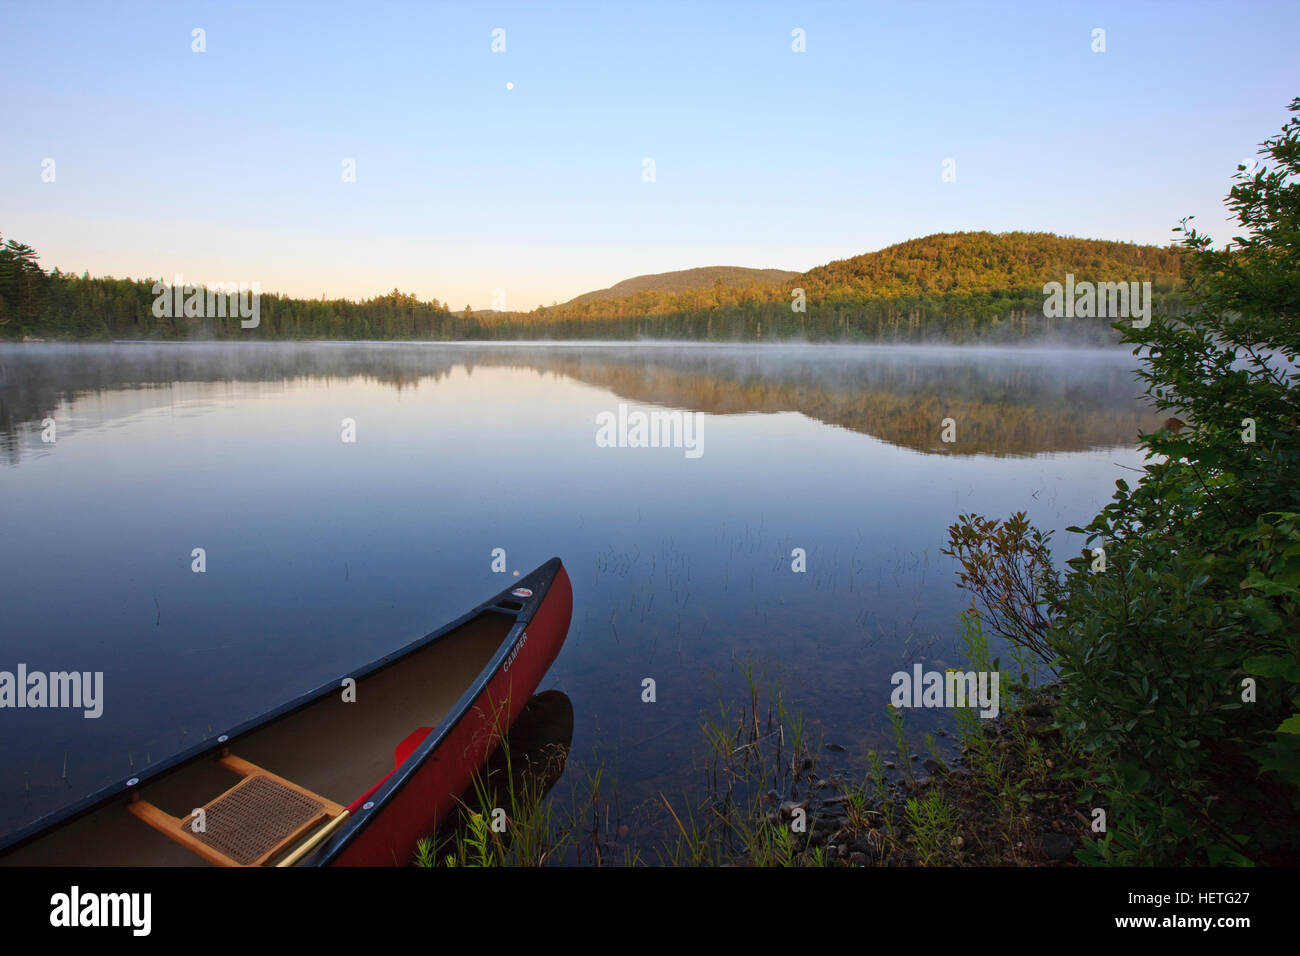 A canoe on Little Greenough Pond in Errol, New Hampshire. - Stock Image